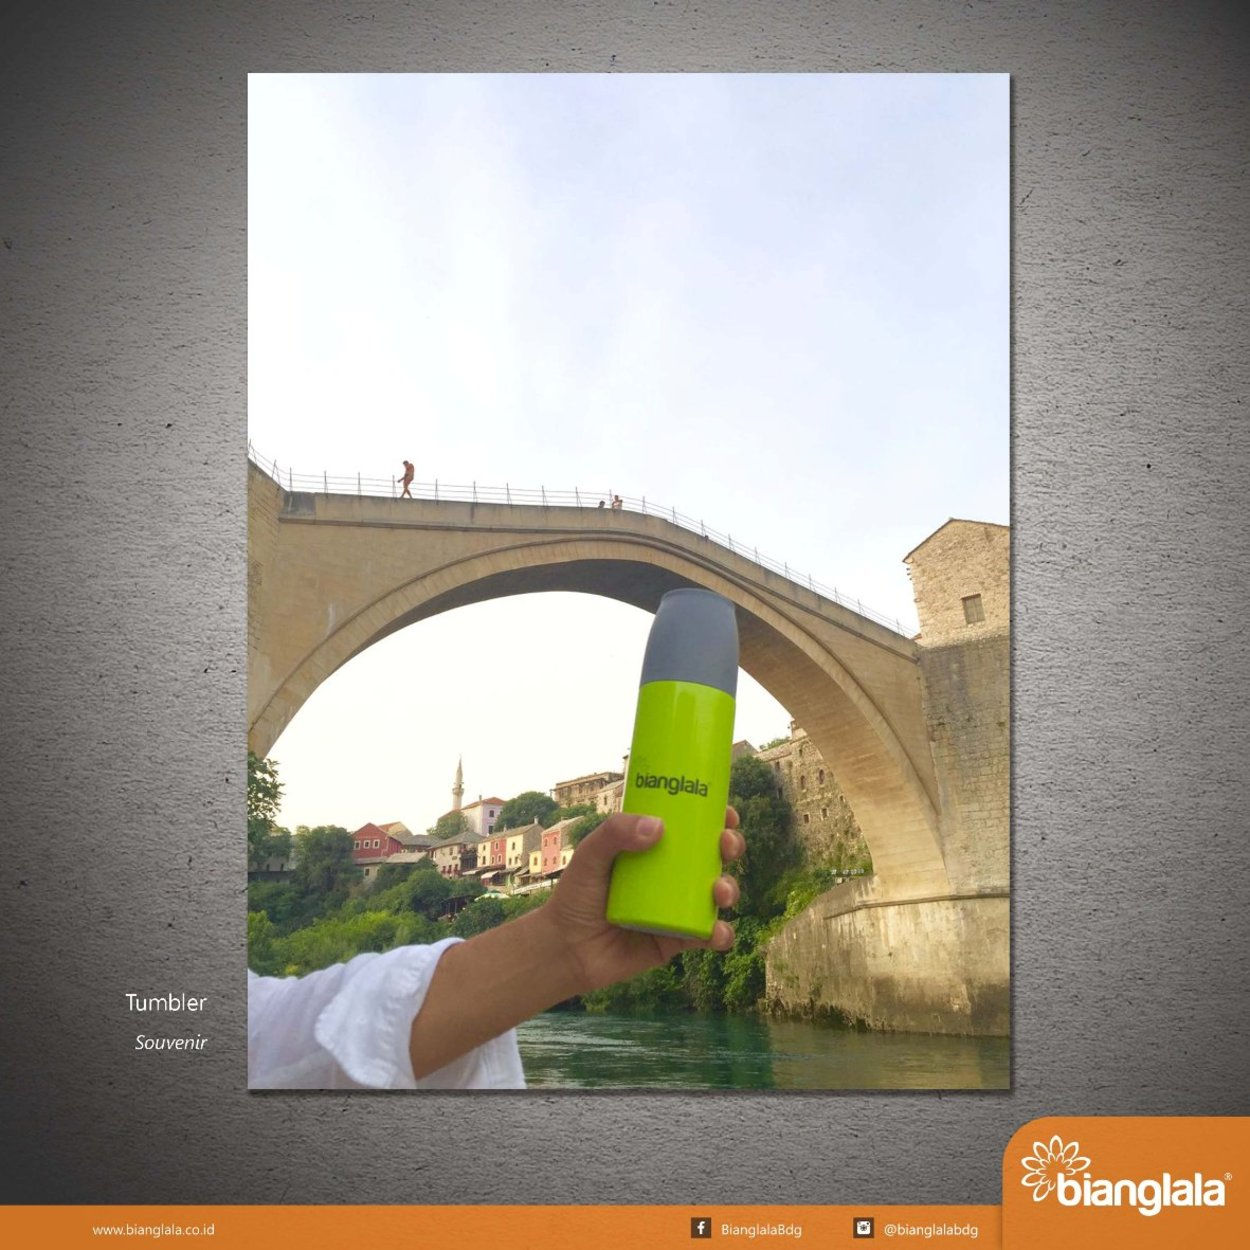 tumbler bianglala at mostar bridge